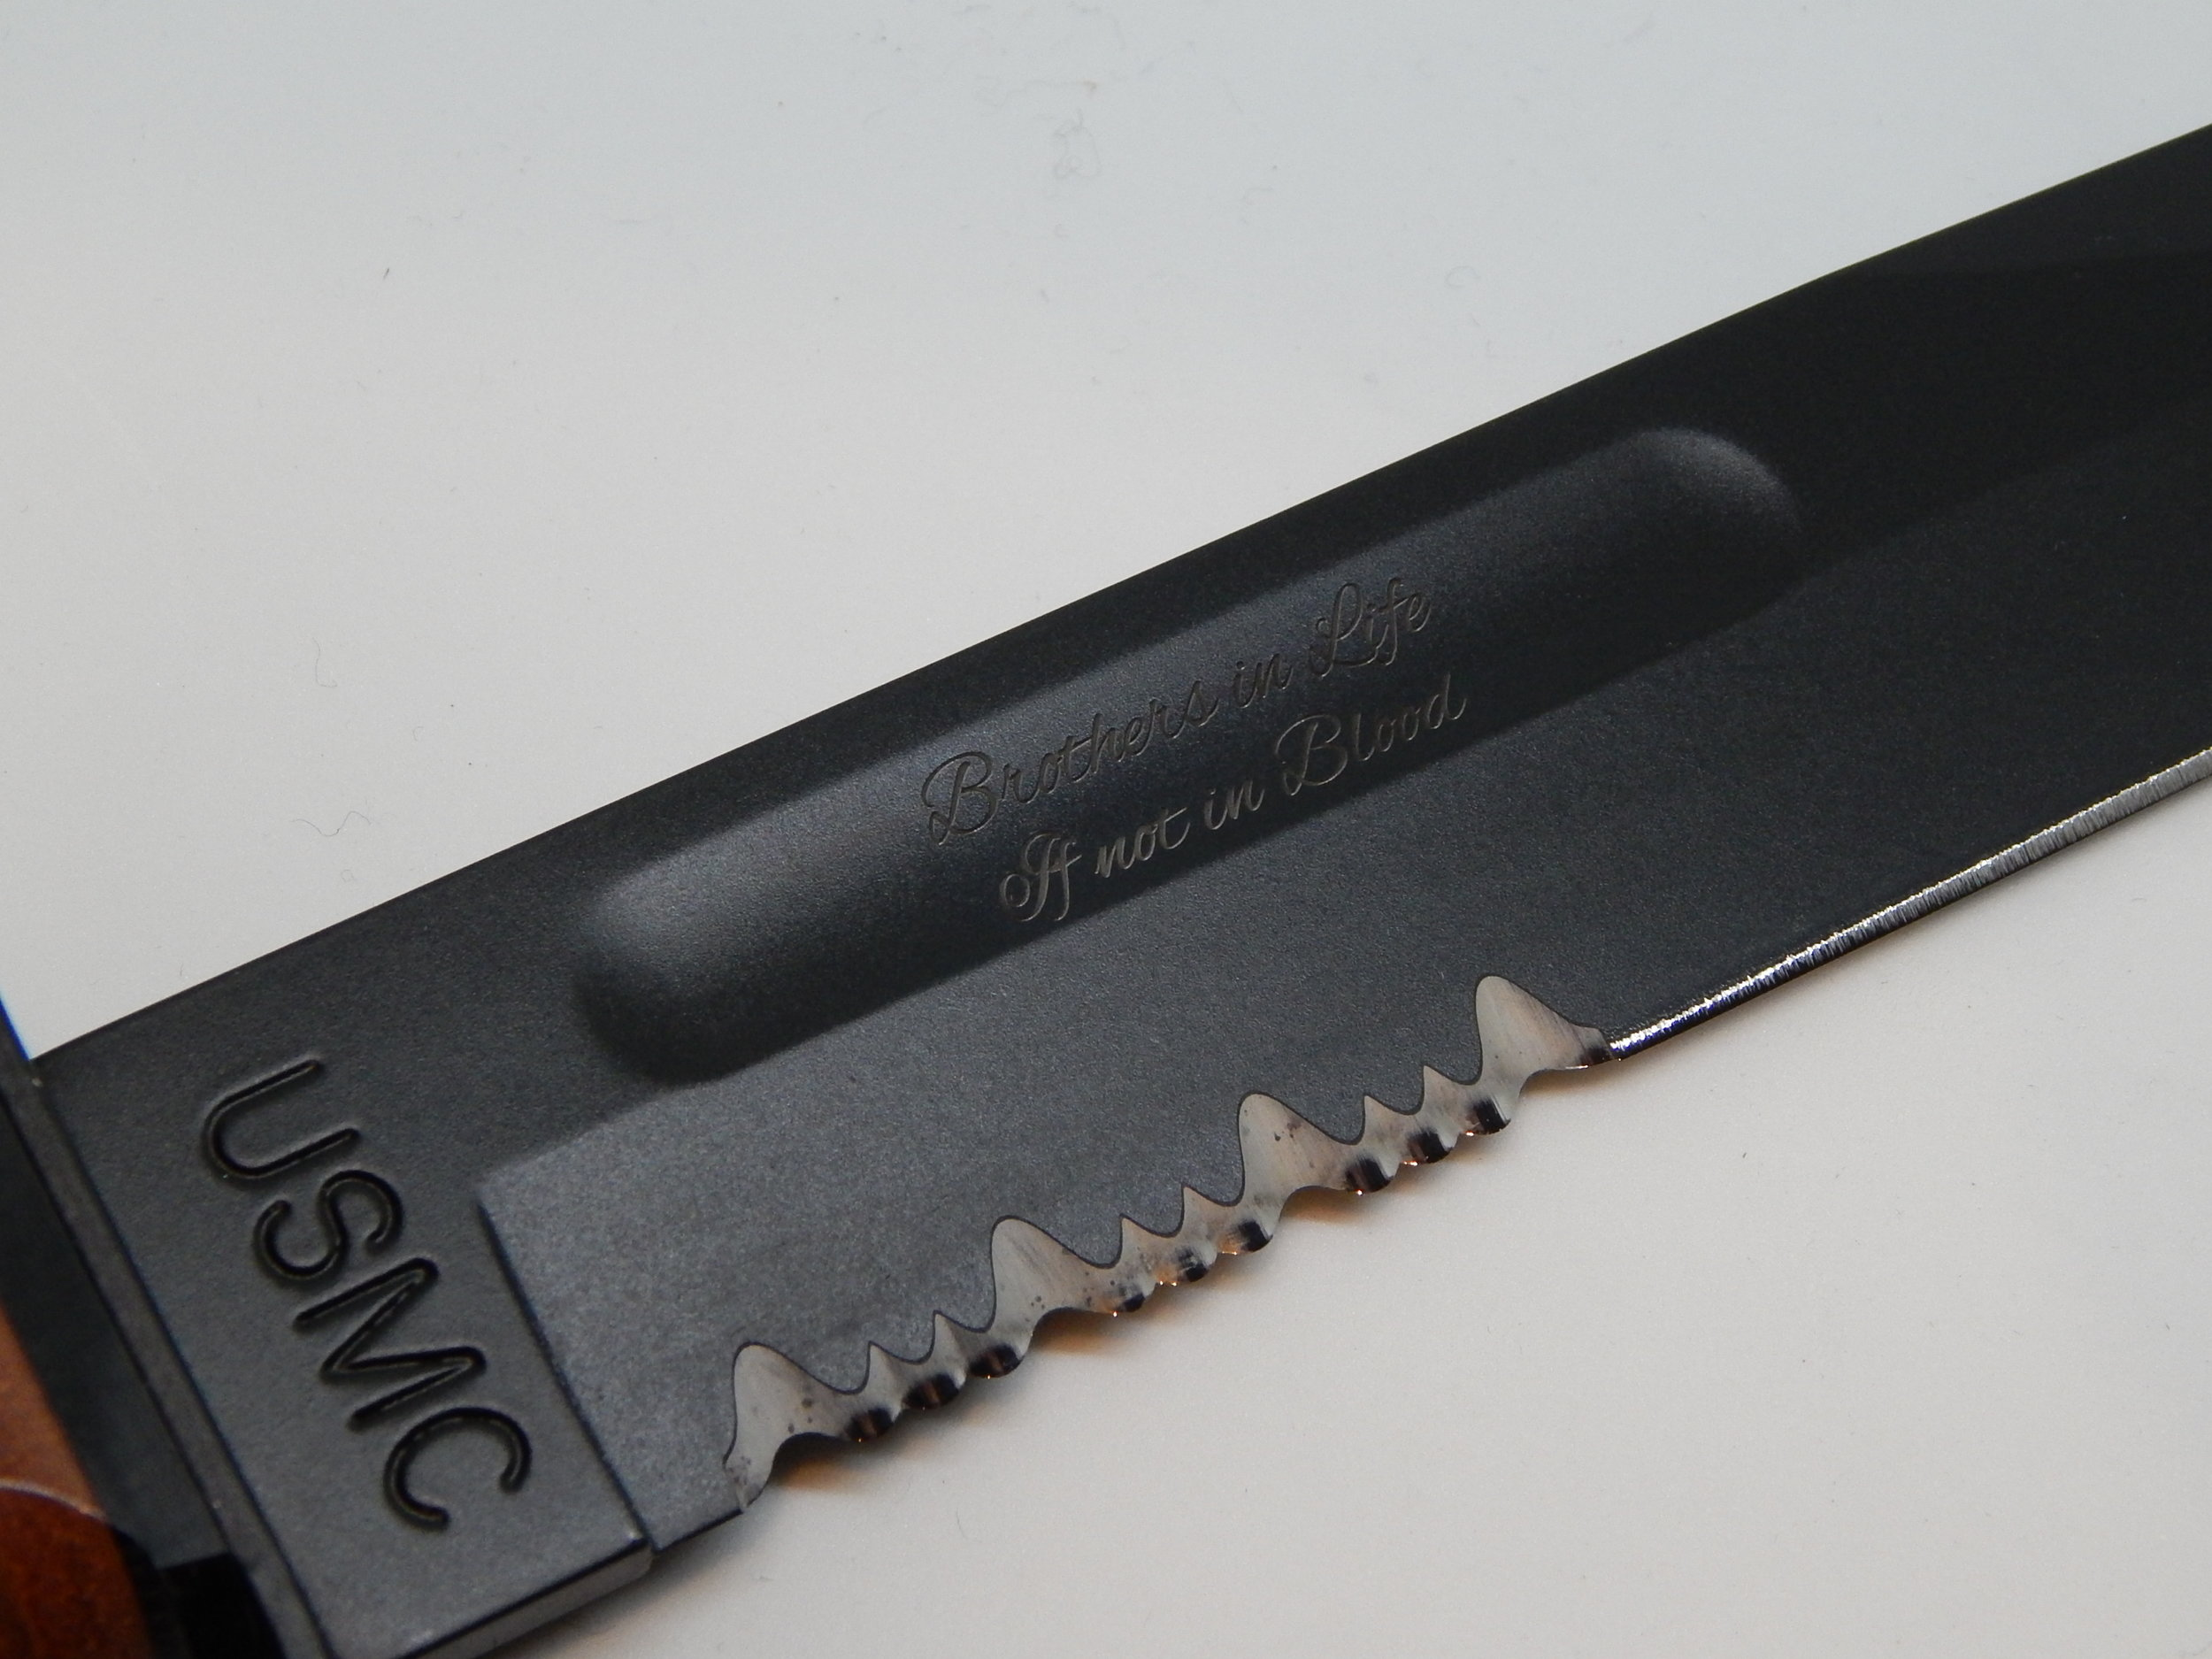 Engraving a powder coated knife.